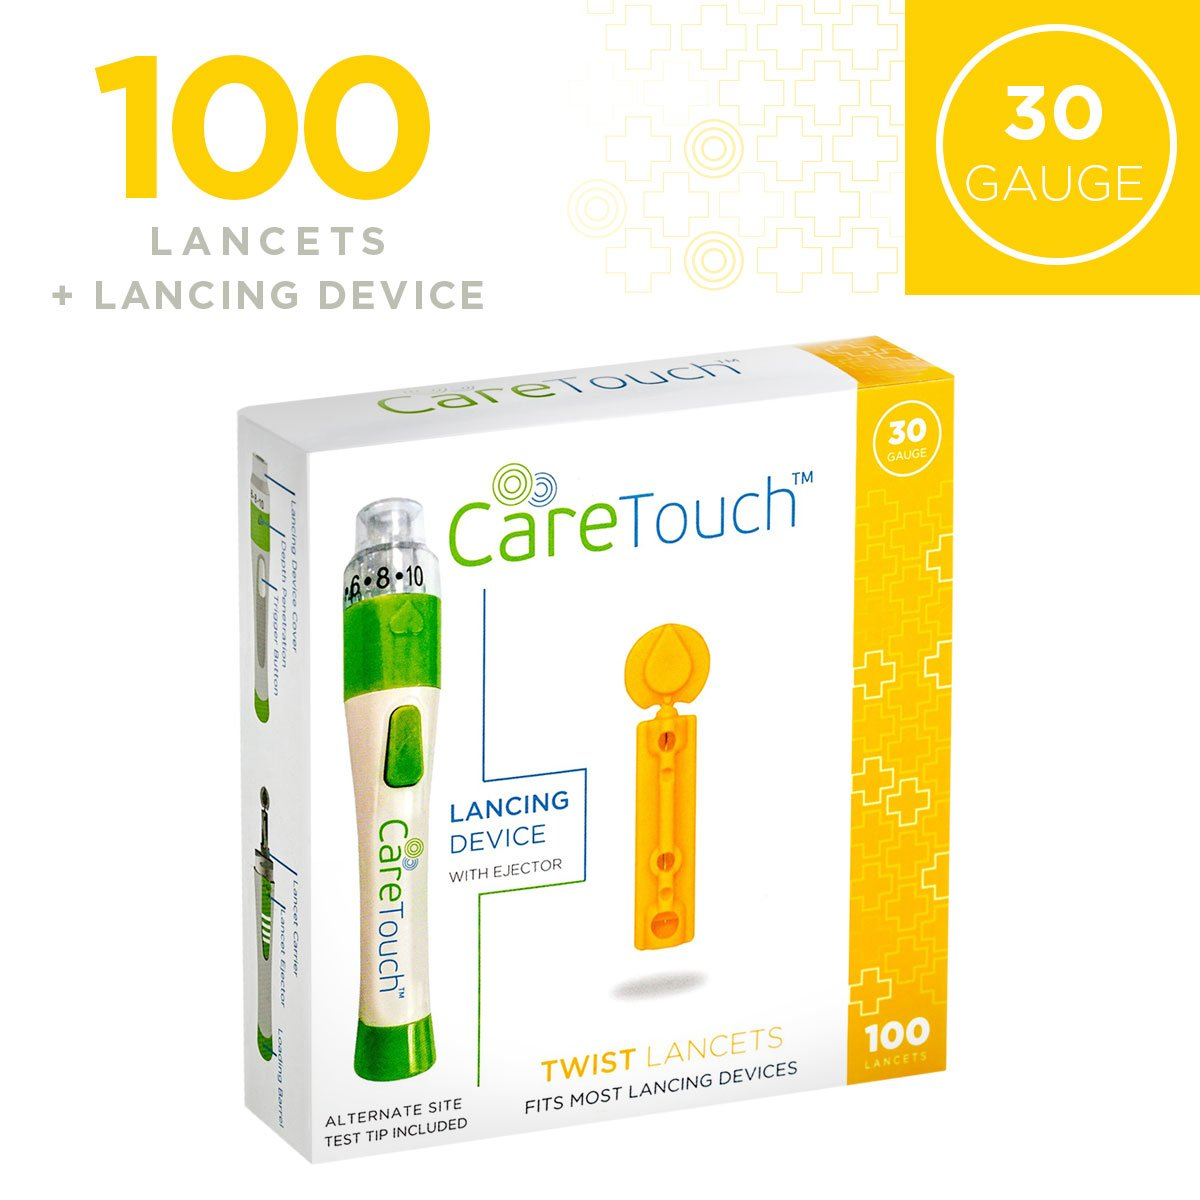 Care Touch 30 gauge Lancets and Lancing Device (100 Lancets + Lancing Device)